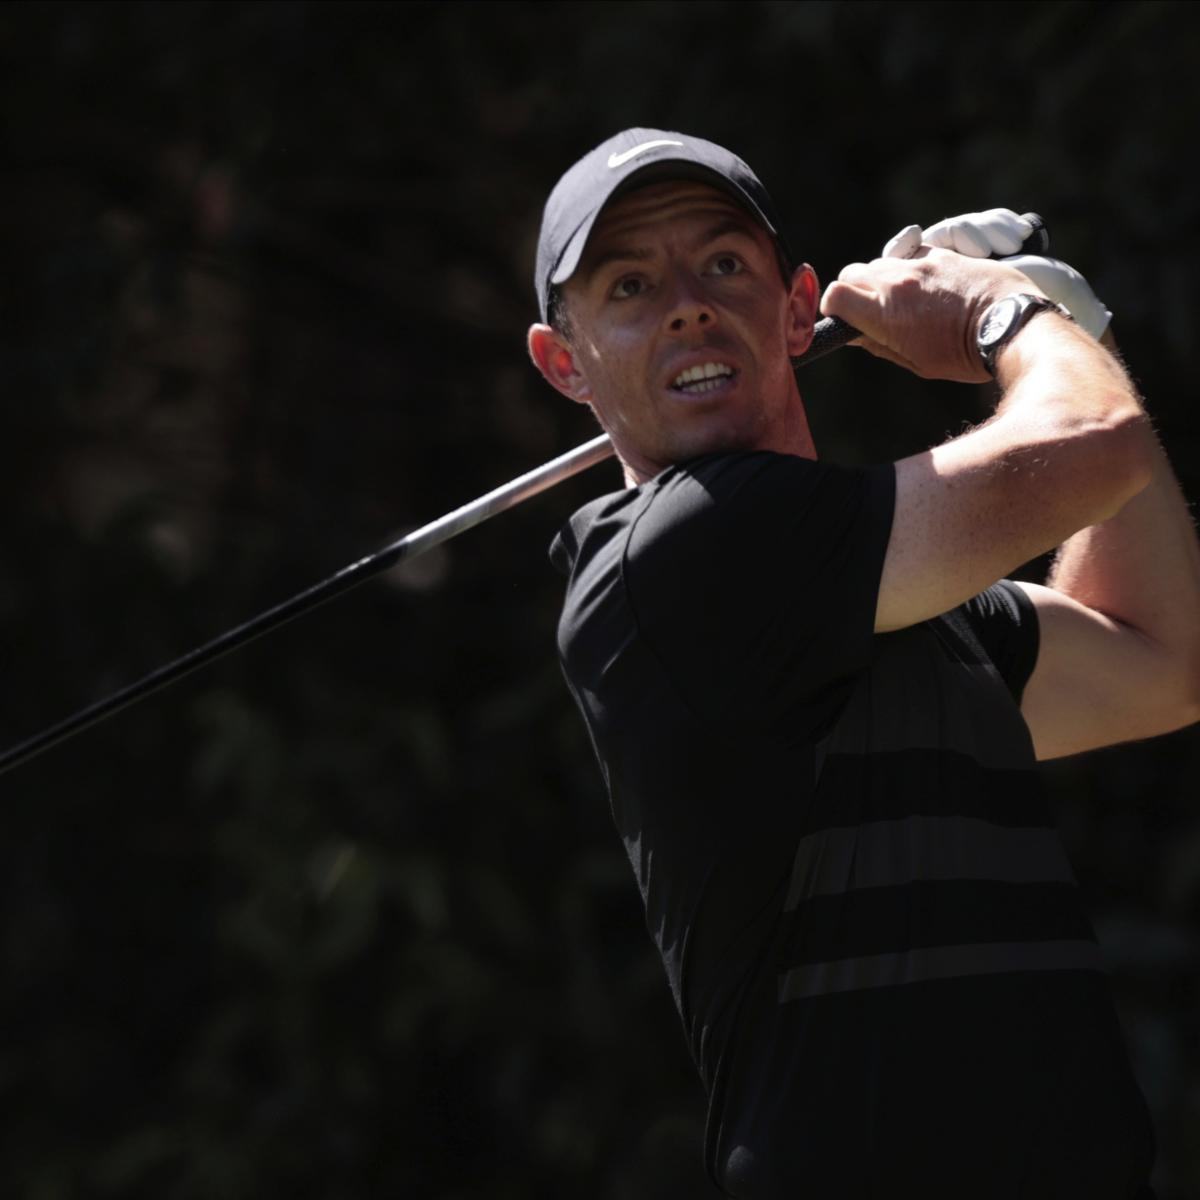 WGC-Mexico Championship 2020: Rory McIlroy Holds 2-Shot Lead After Round 1